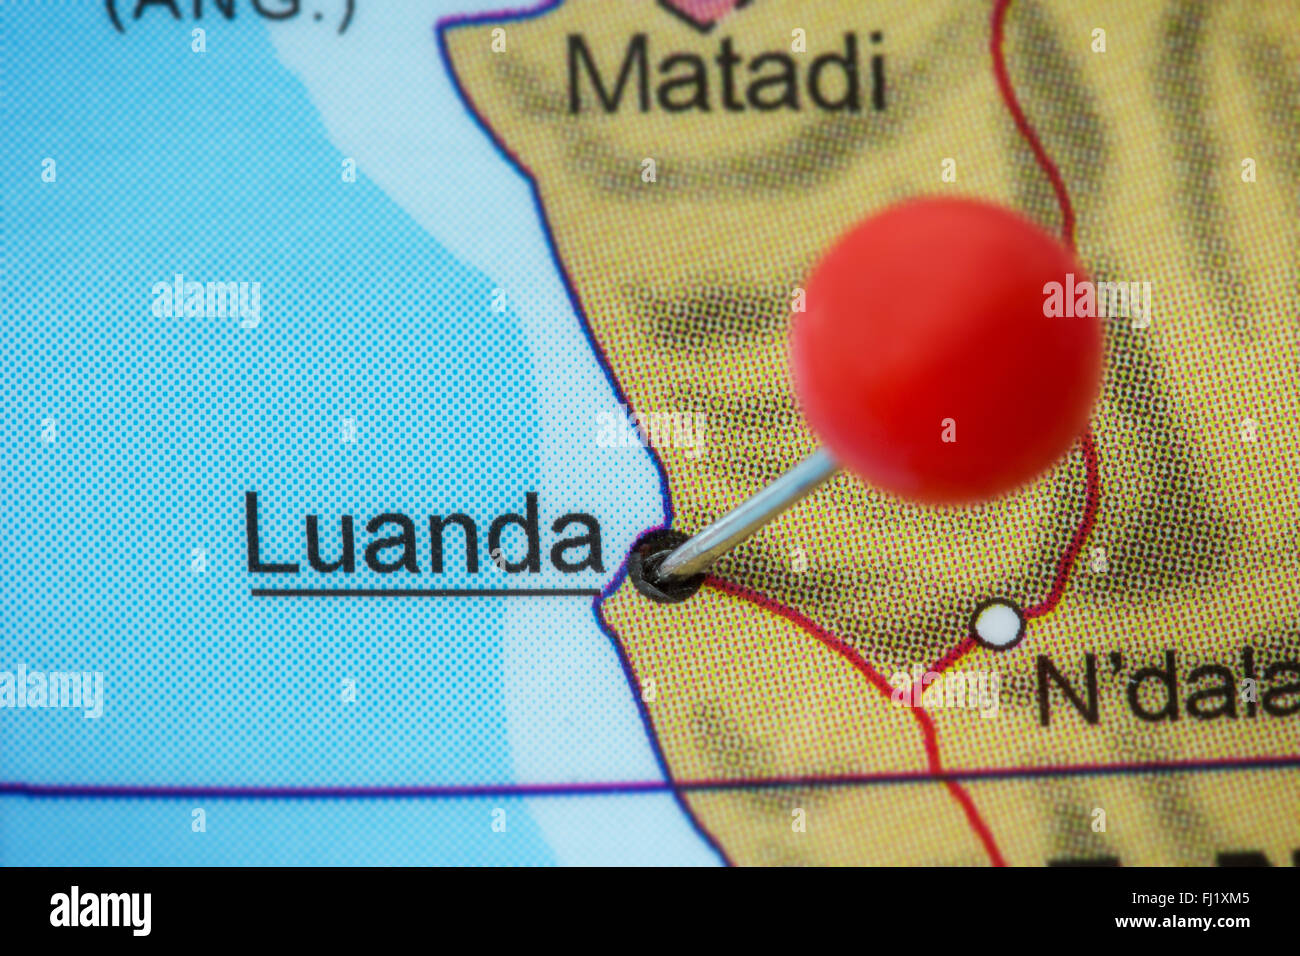 Close-up of a red pushpin in a map of Luanda, Angola. - Stock Image